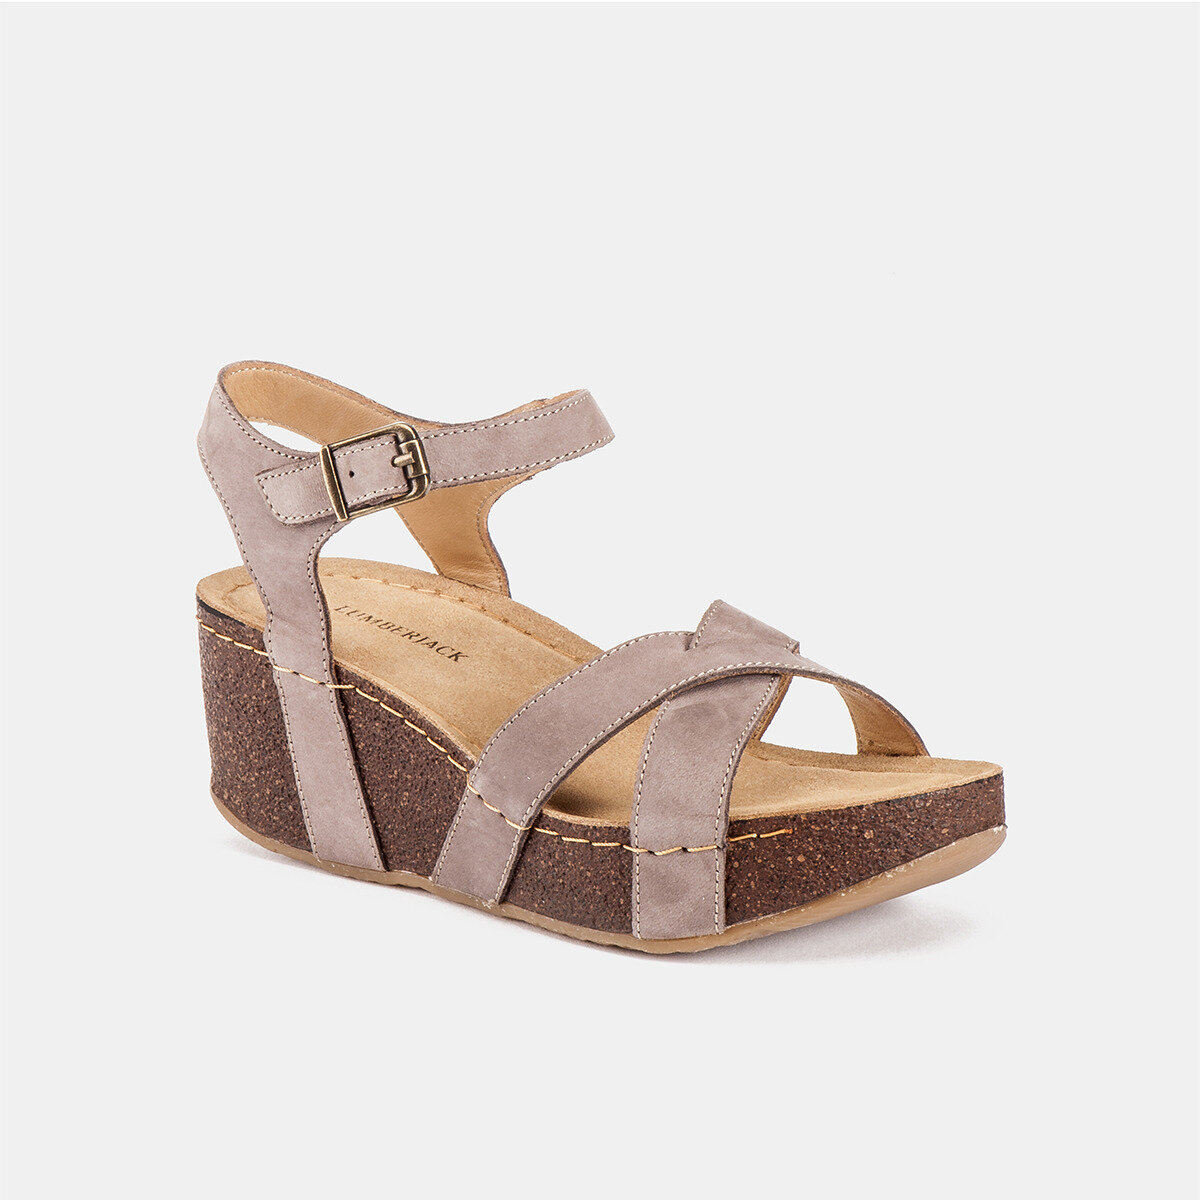 DOLLY Taupe Woman Sandals